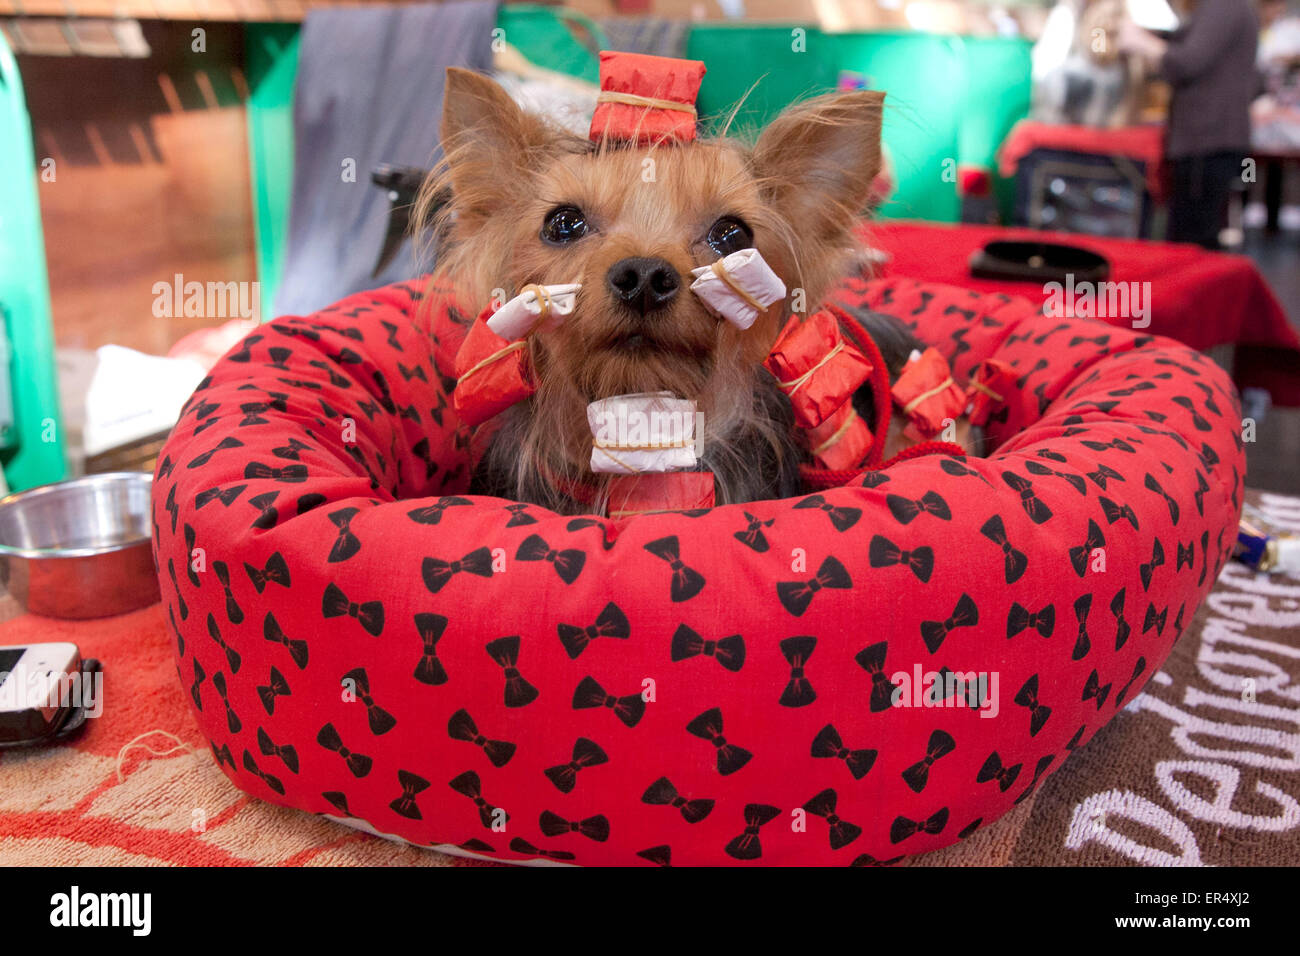 Cute Toy Yorkshire Terrier waiting with hair in packages. Crufts 2014 at the NEC in Birmingham, UK. 8th March 2014 - Stock Image